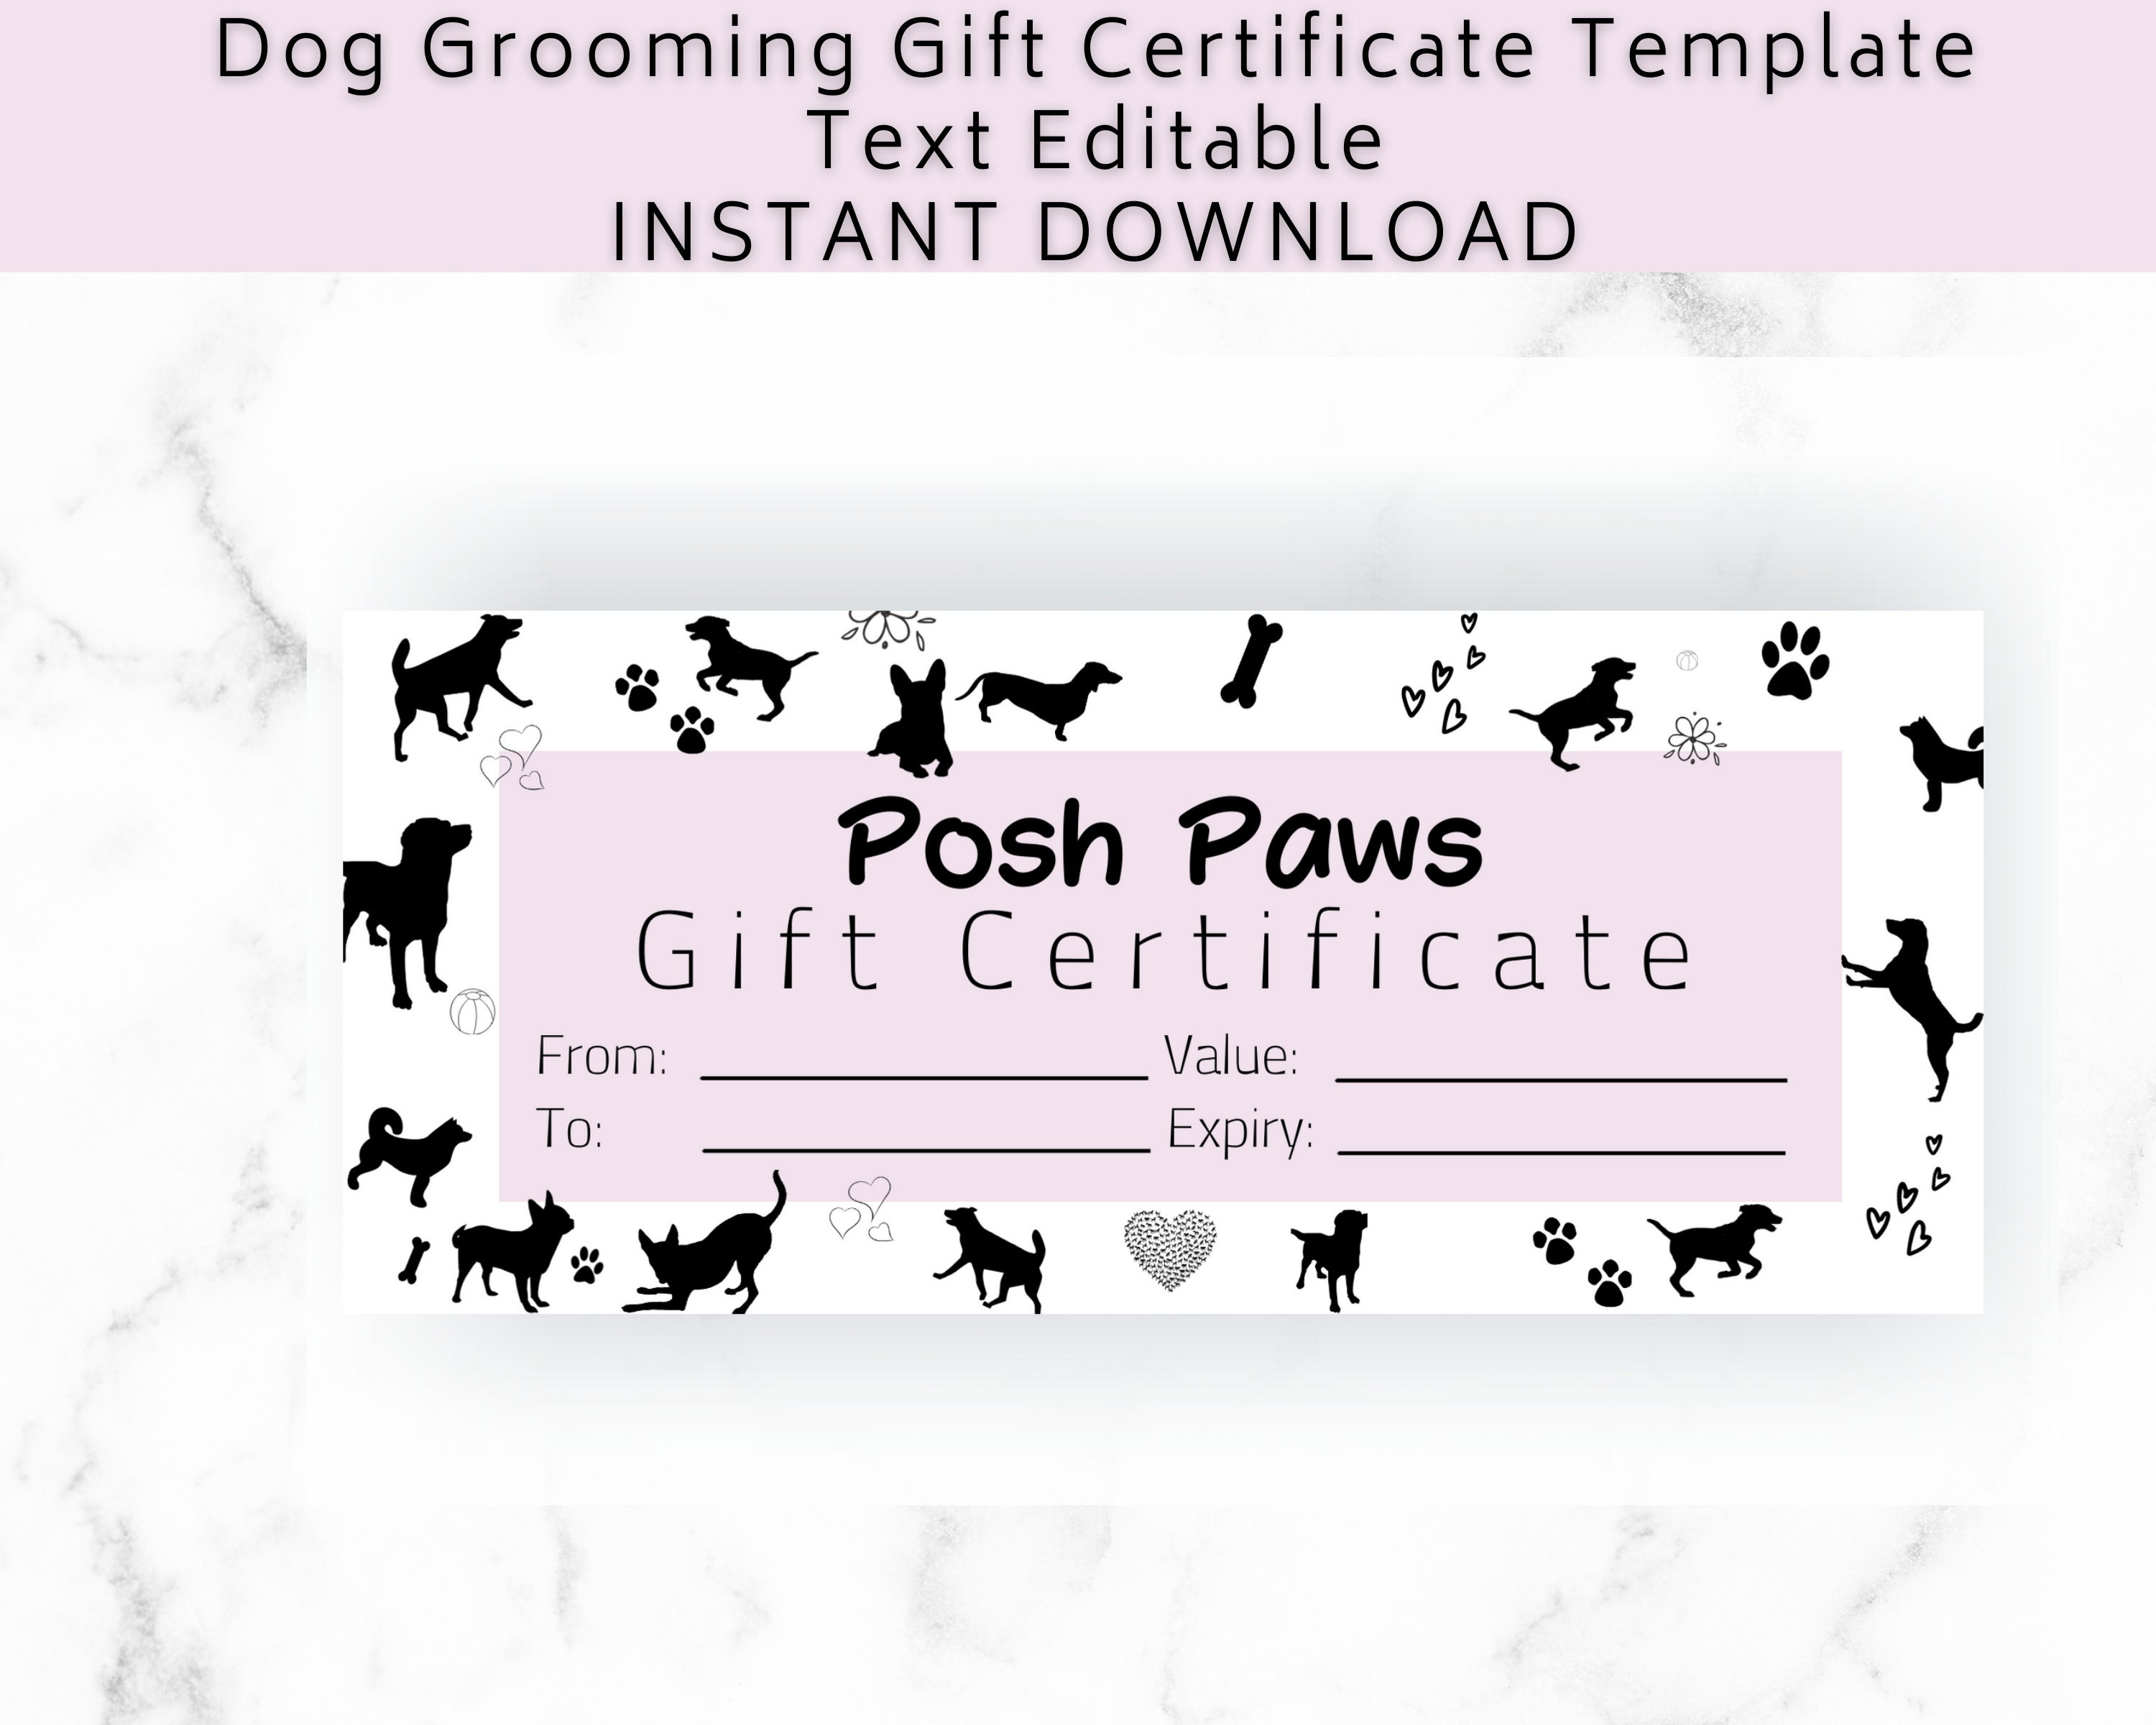 Gift Certificate Template Dog Grooming. DIY Gift Voucher for small business  . Add your logo. Editable digital download. With Dog Grooming Record Card Template